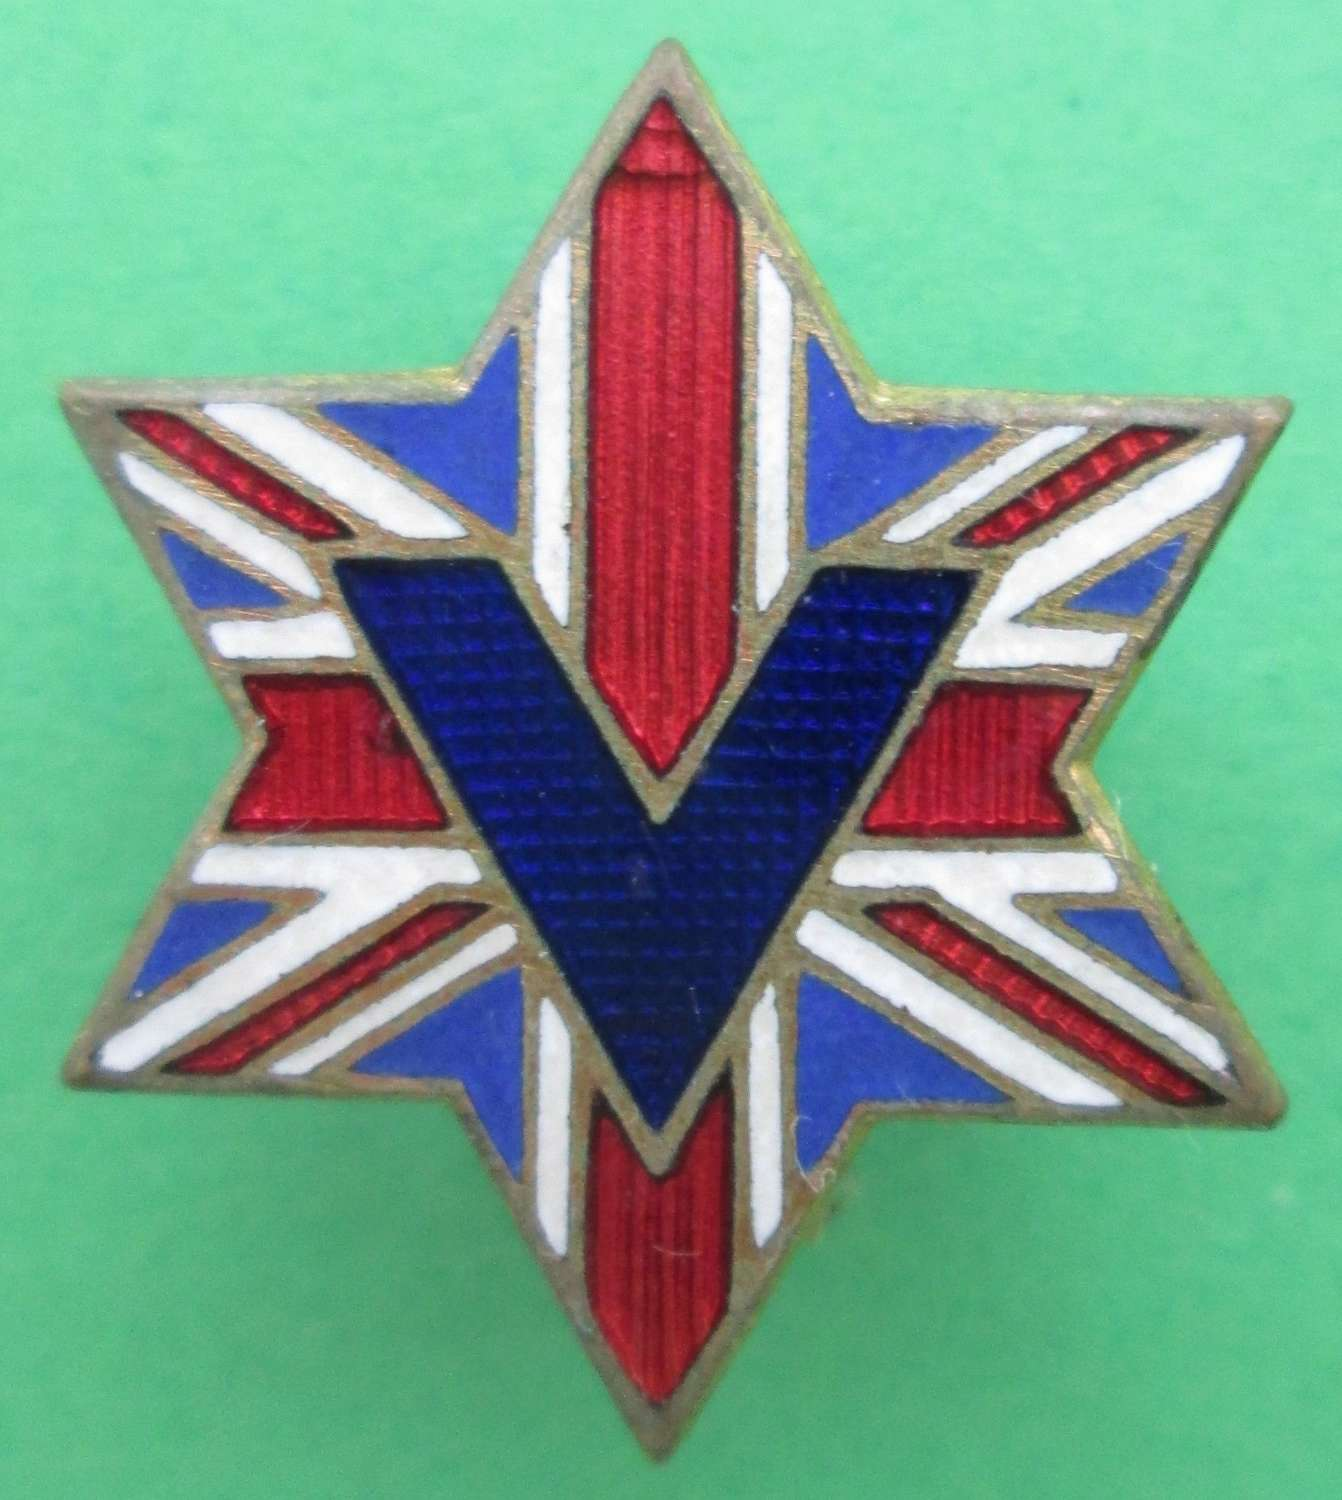 A SCARCE WWII STAR OF DAVID / JEWISH BRITISH FLAG V FOR VICTORY BADGE